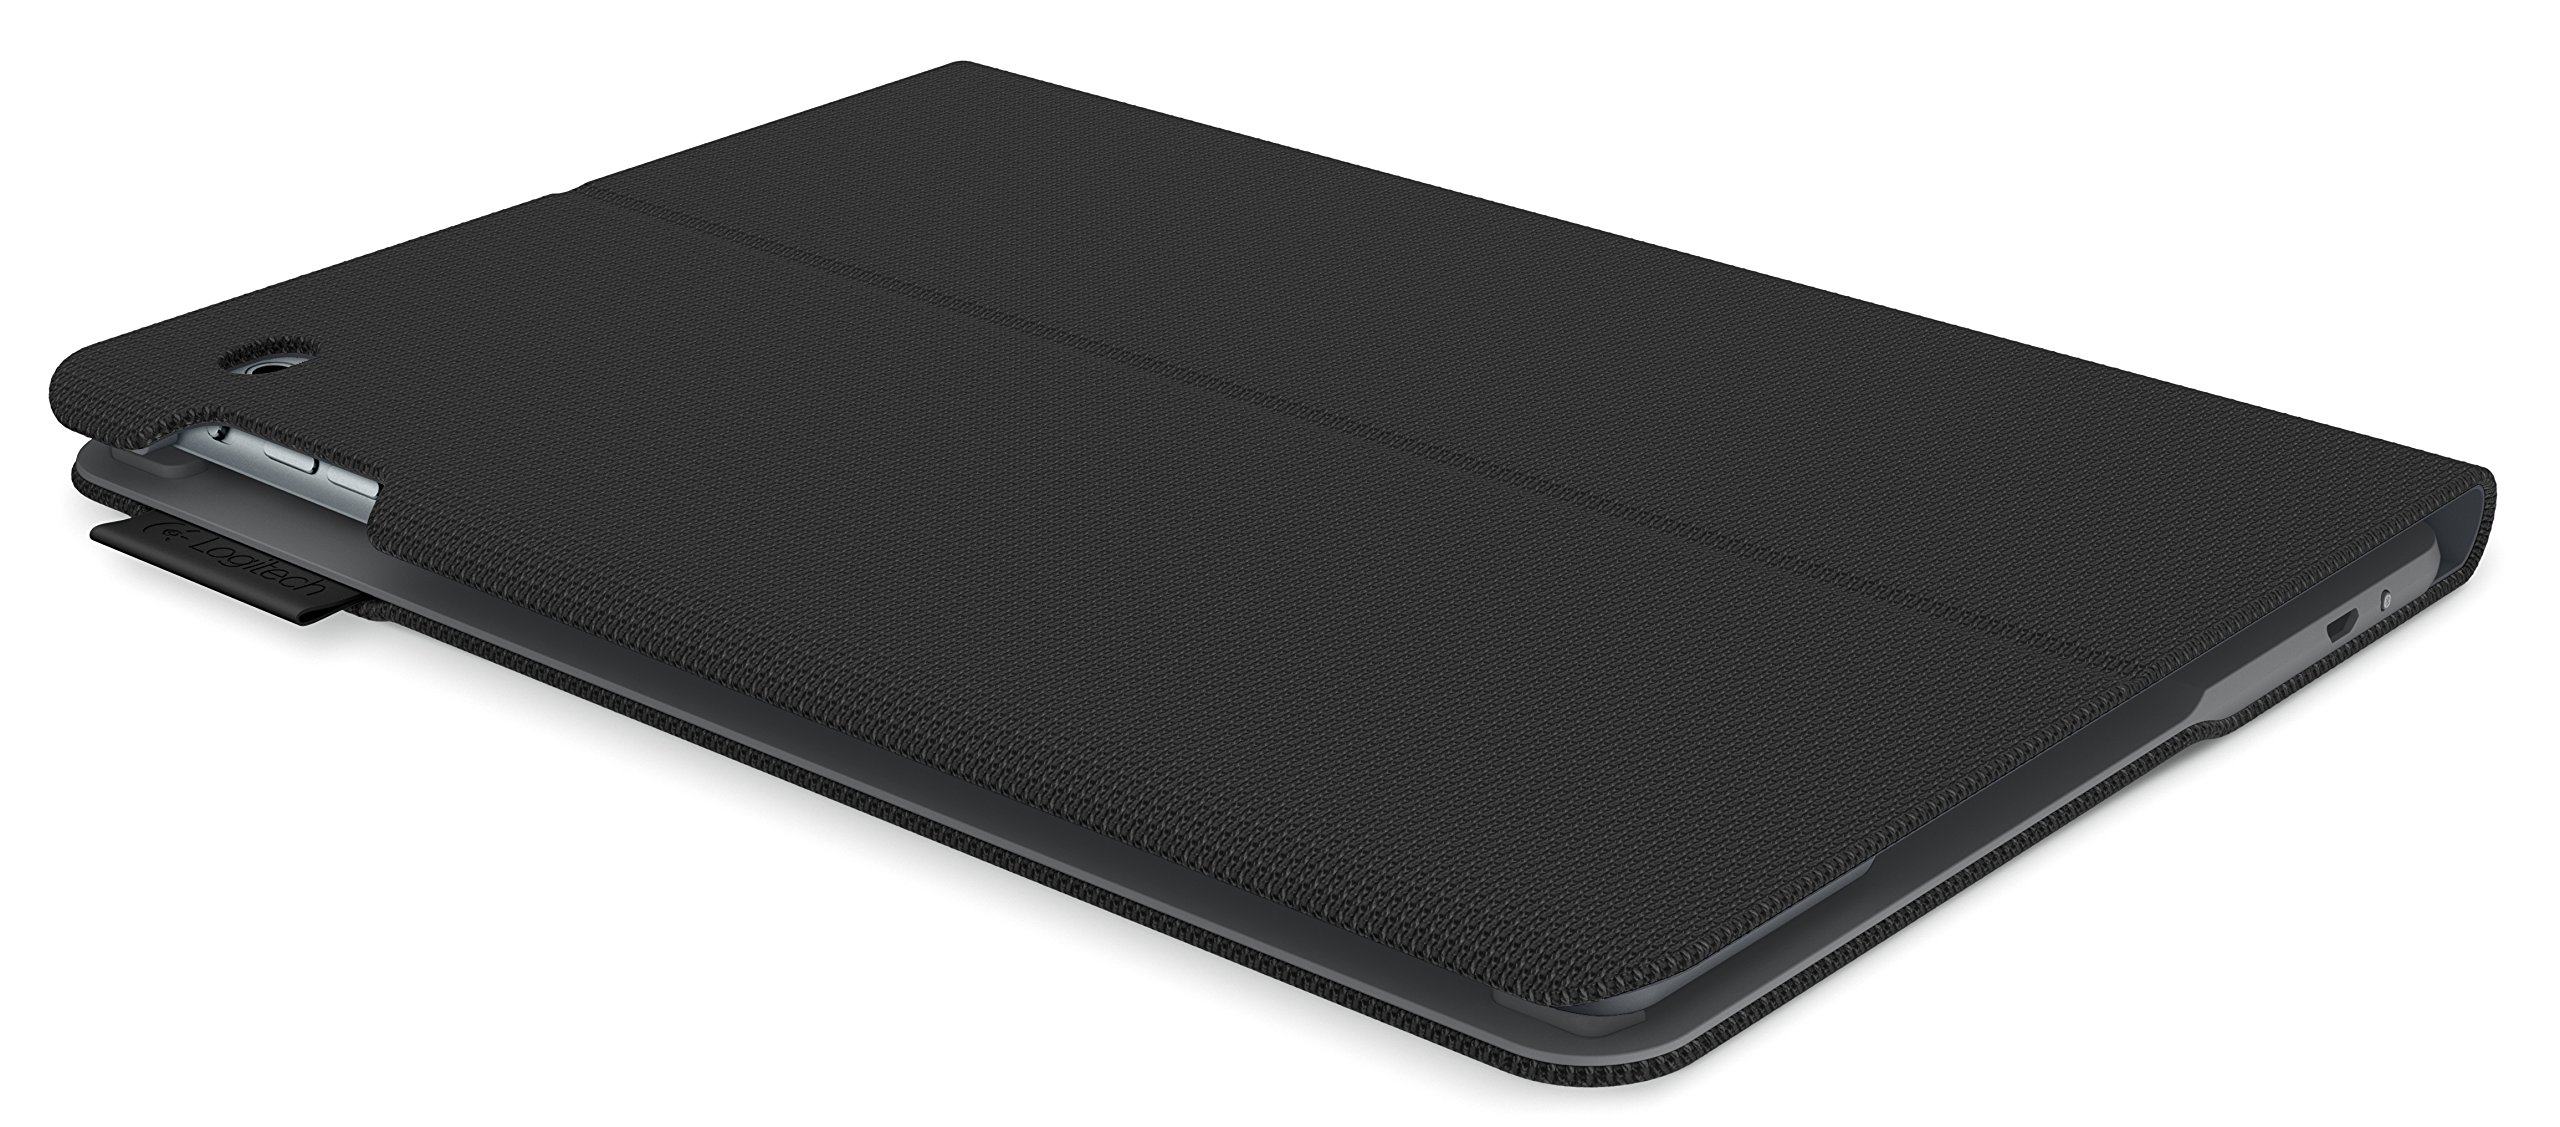 Logitech 920-006576 Protective Case with Integrated Keyboard for iPad Air 2 (Woven Black) by Logitech (Image #5)